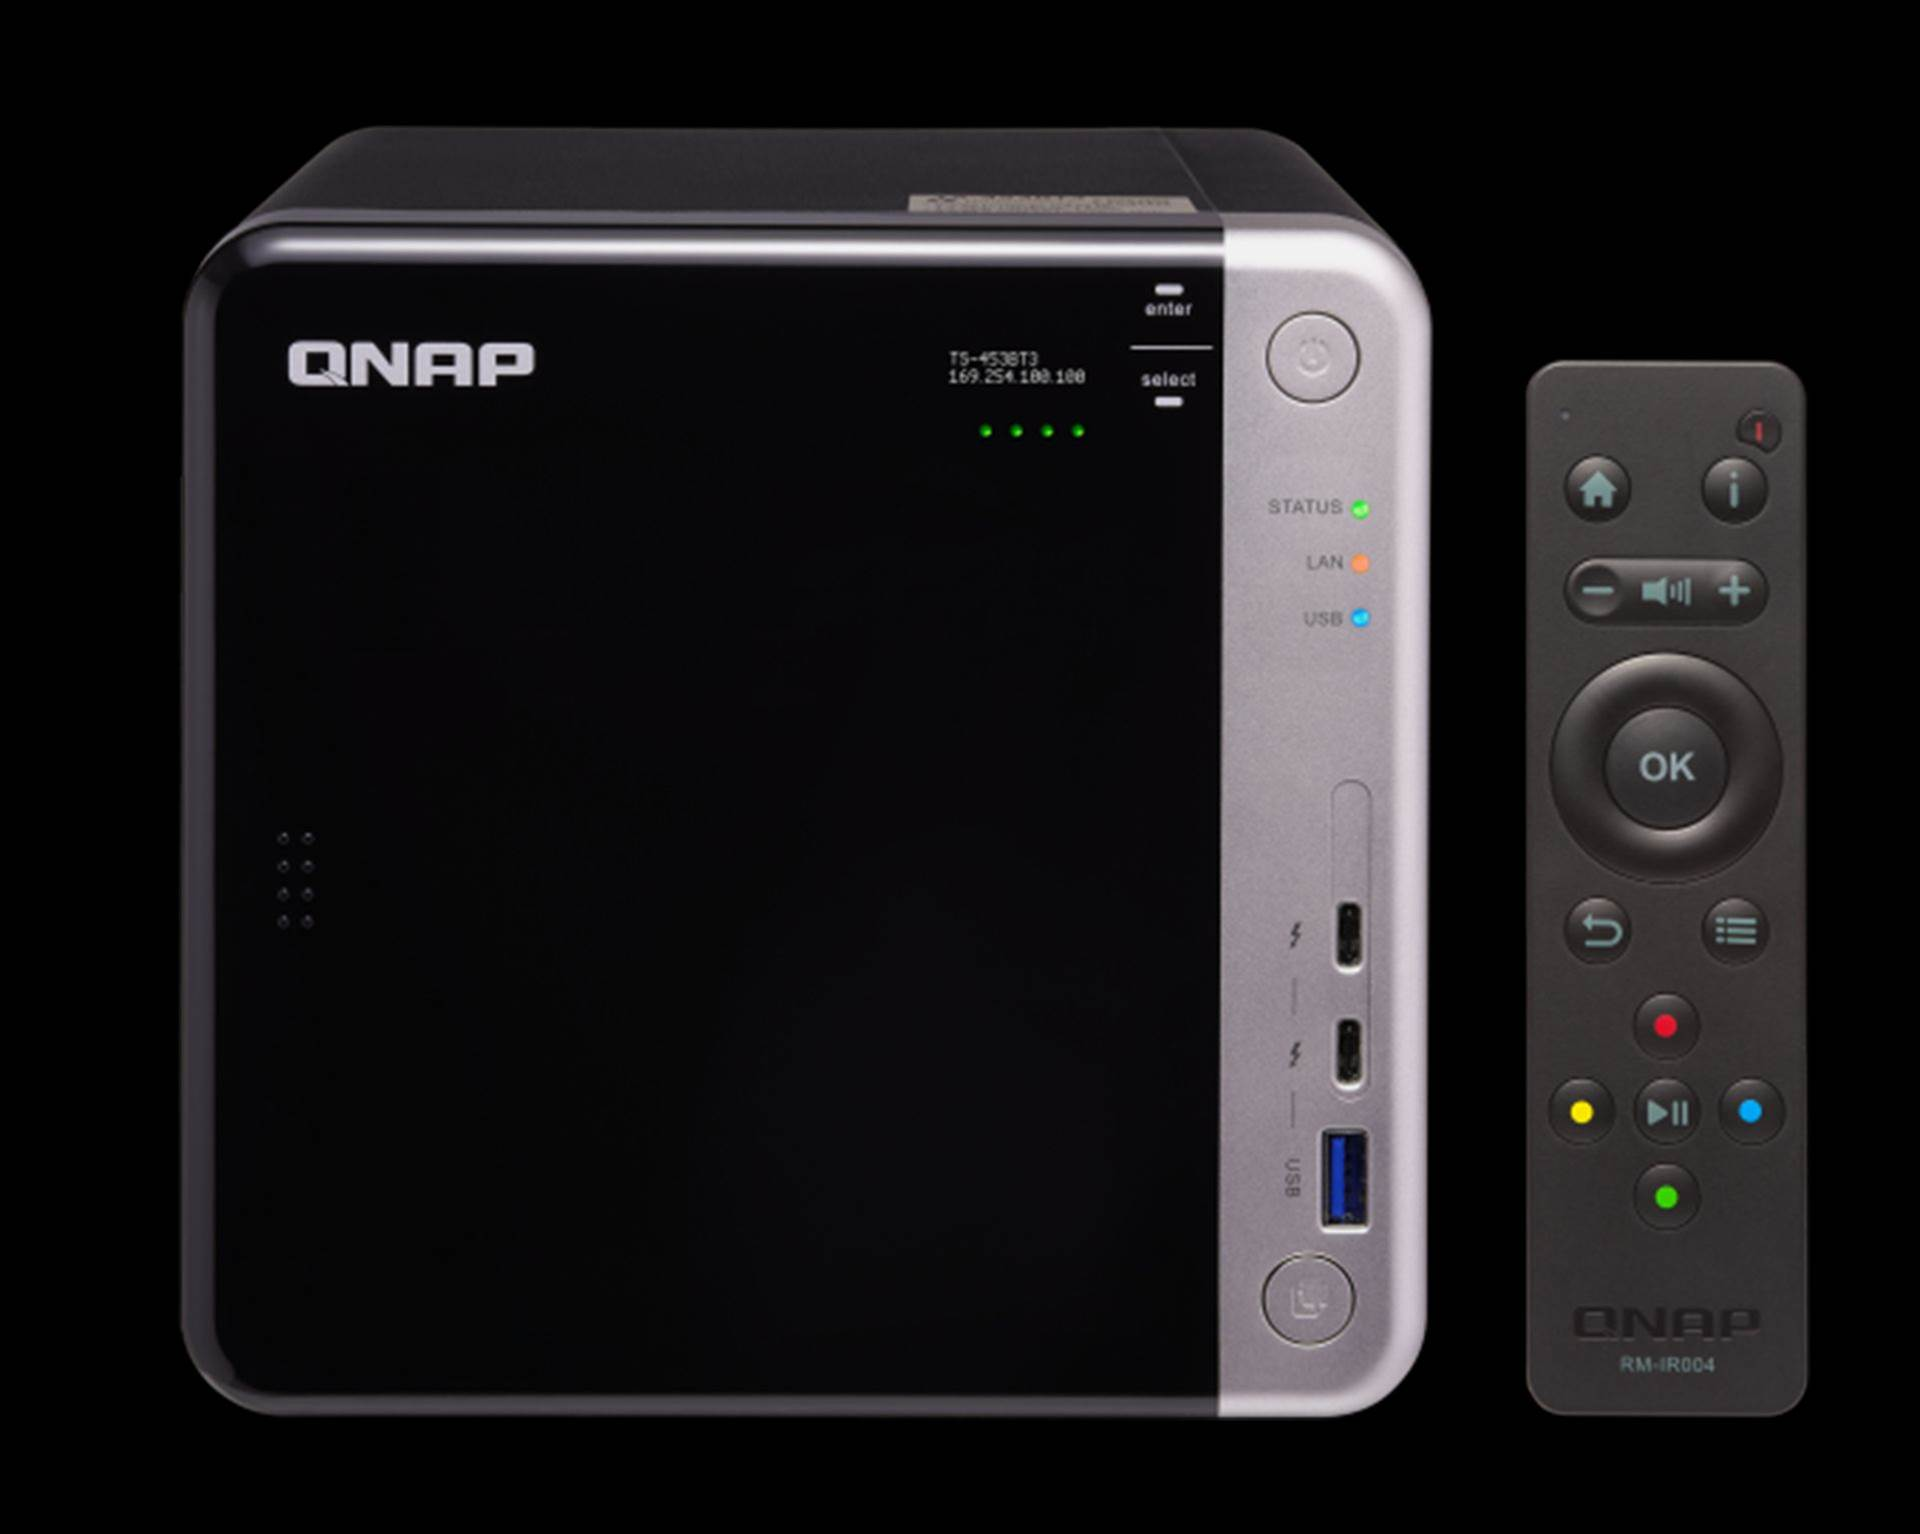 Review: QNAP TS-453BT3 NAS